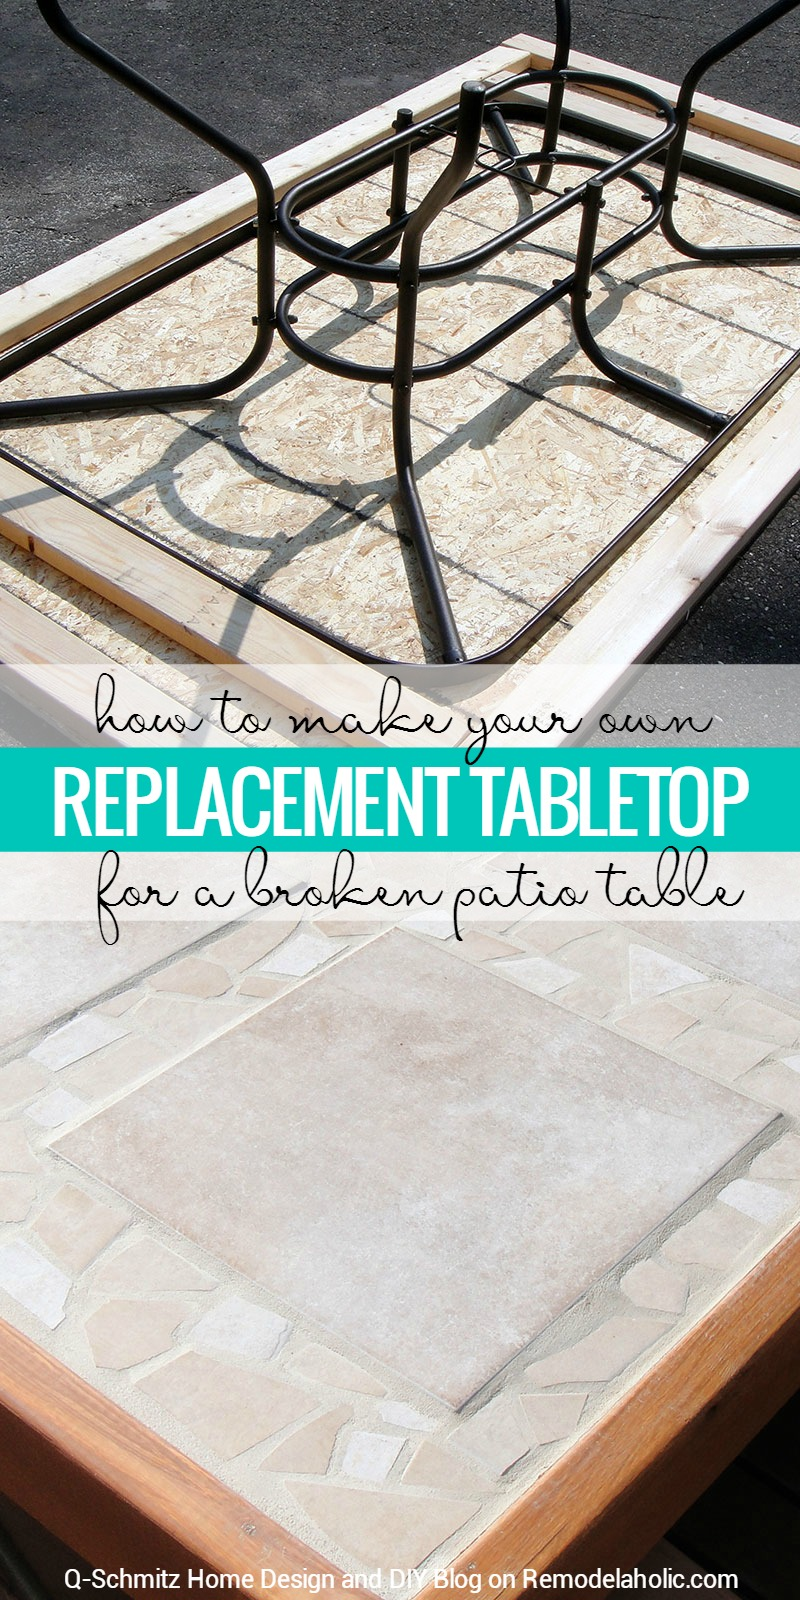 Broken patio table top? No problem! Make your own replacement tabletop with  some lumber